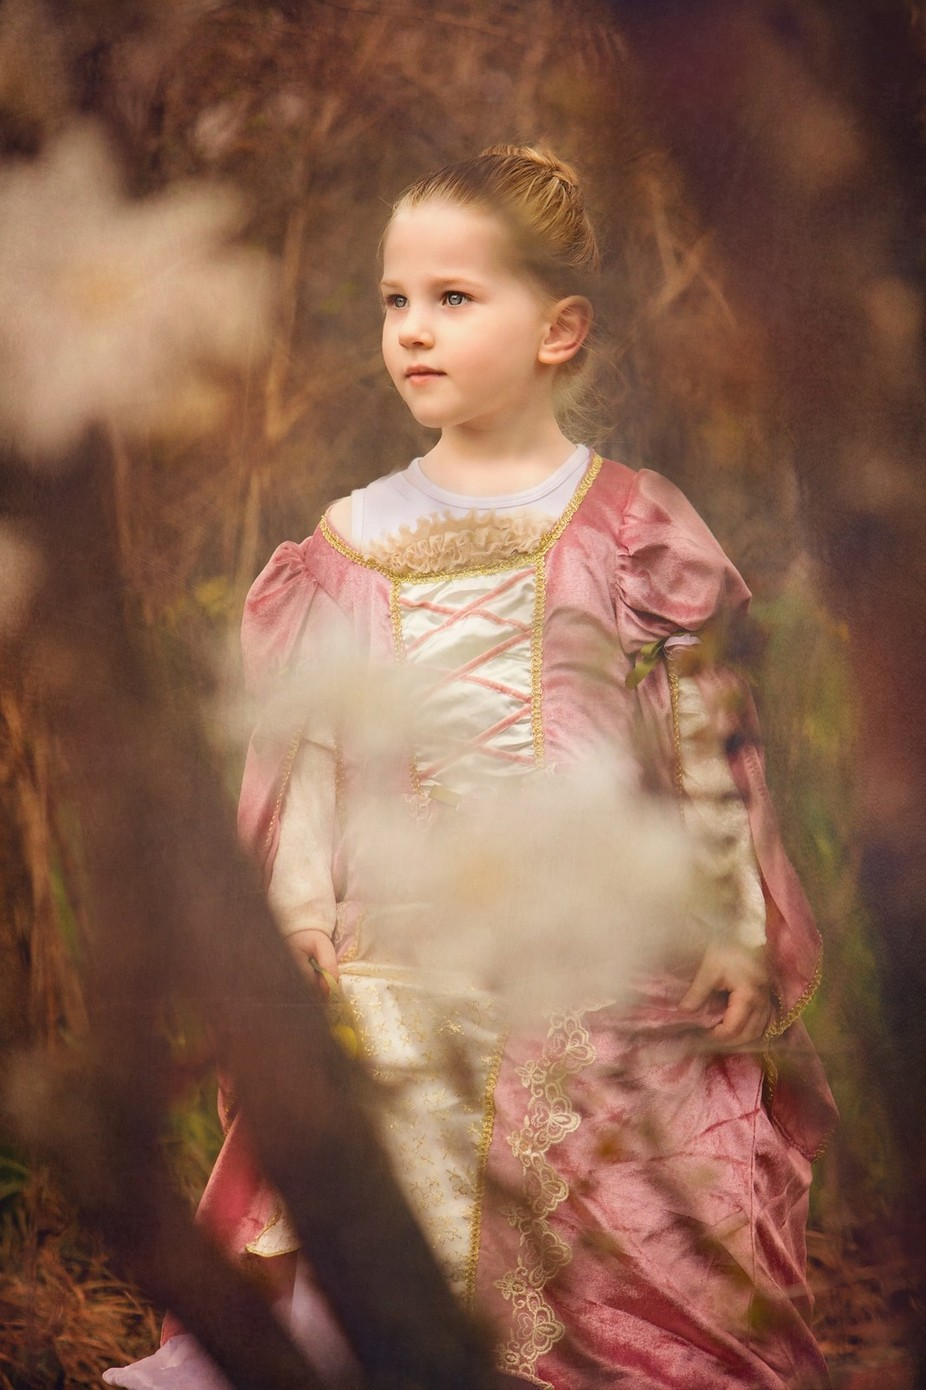 Princess in the Woods by jesbrandon - Children In Nature Photo Contest